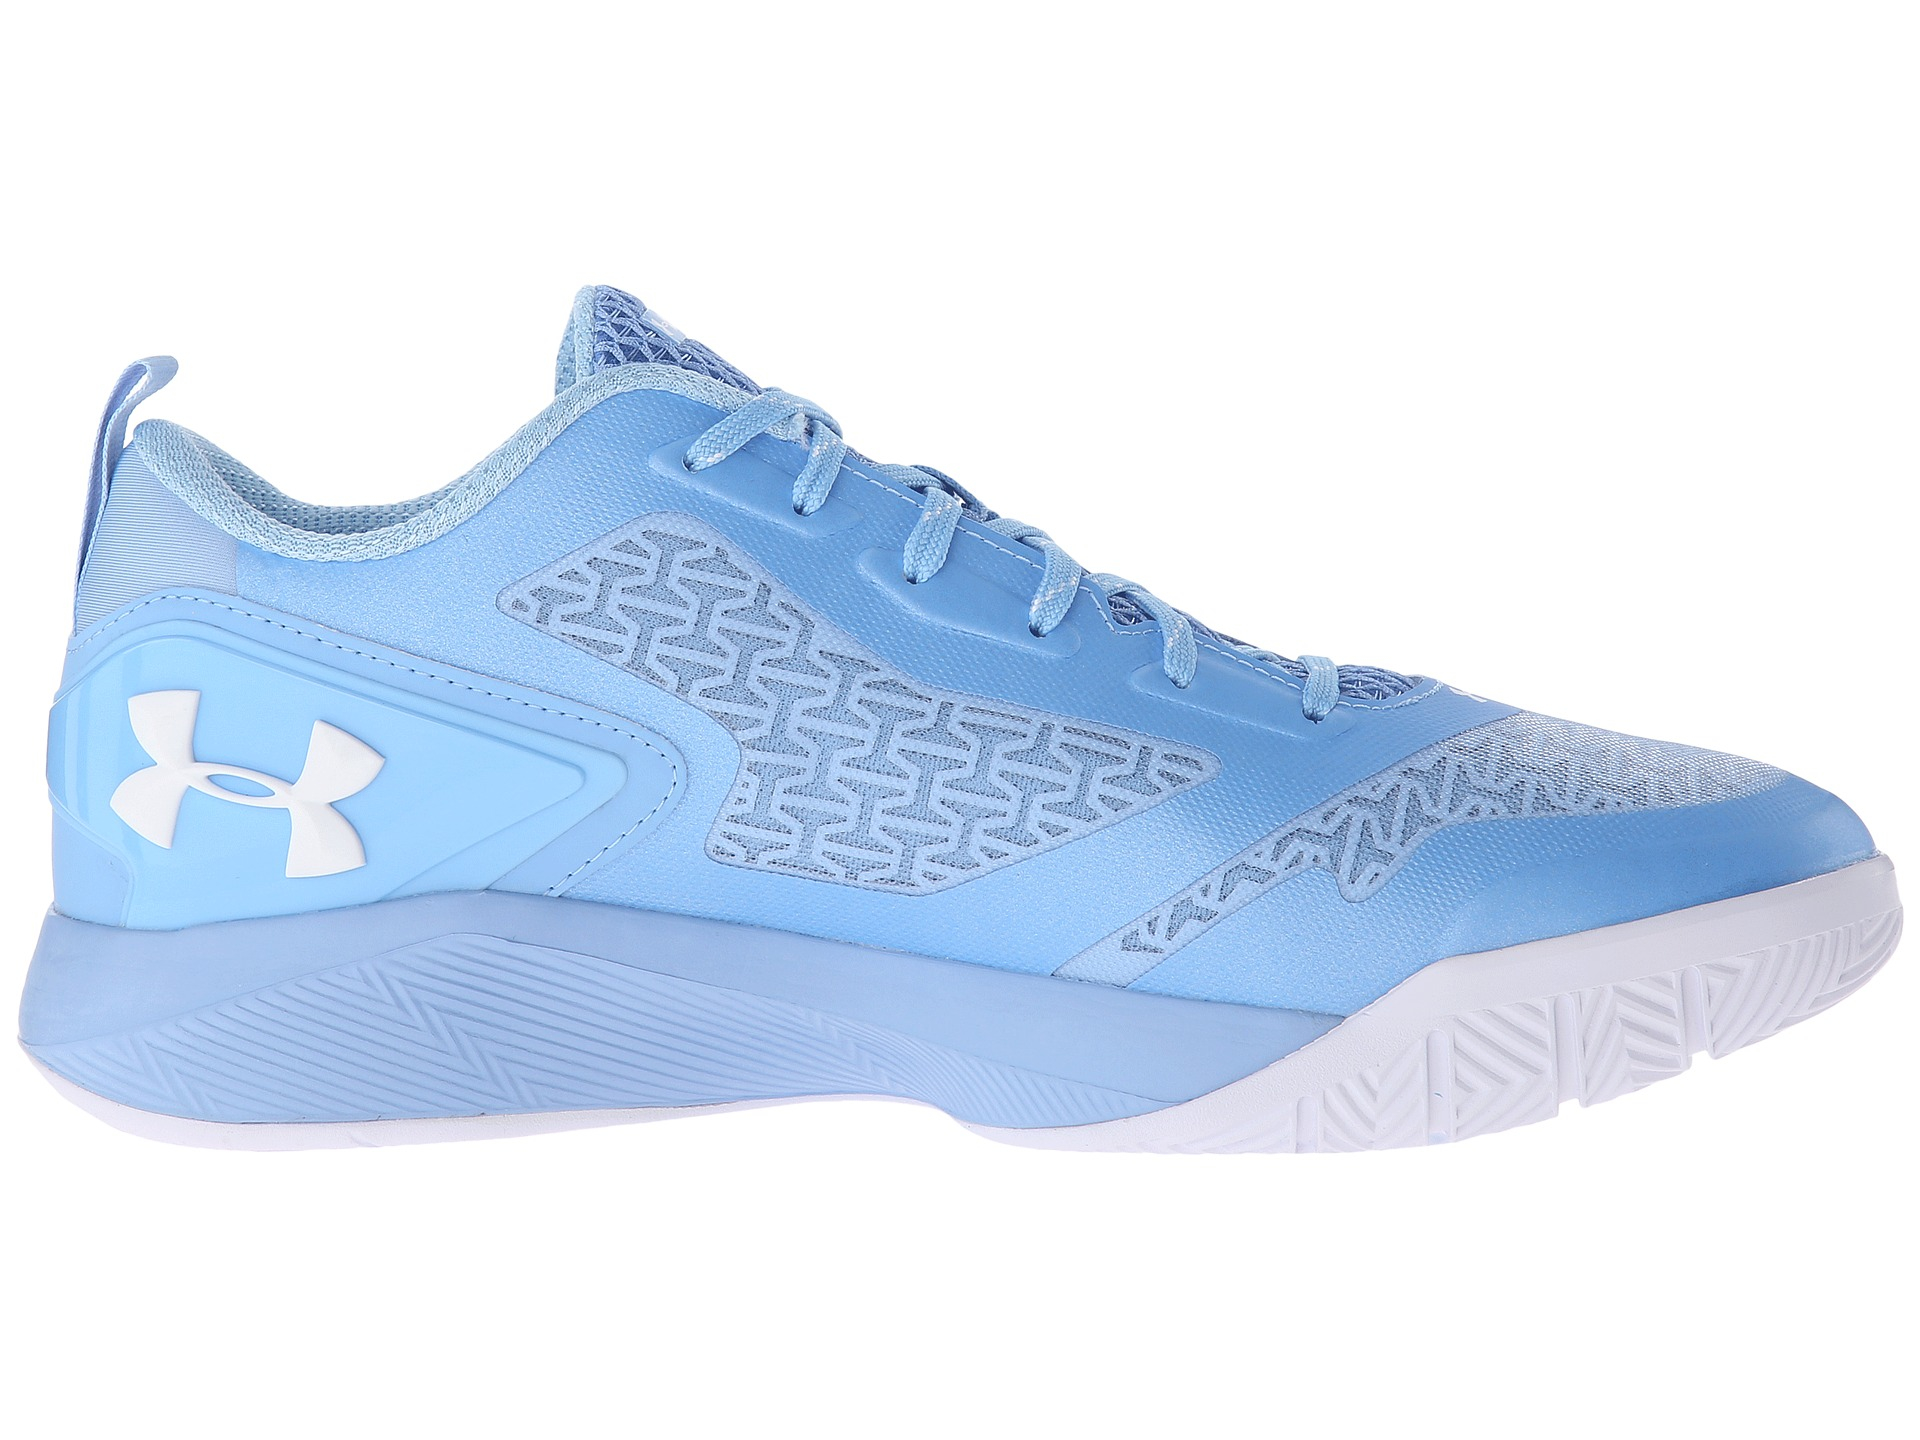 online store 5ee4f bfc98 Under Armour Blue Ua Clutchfit™ Drive 2 Low for men